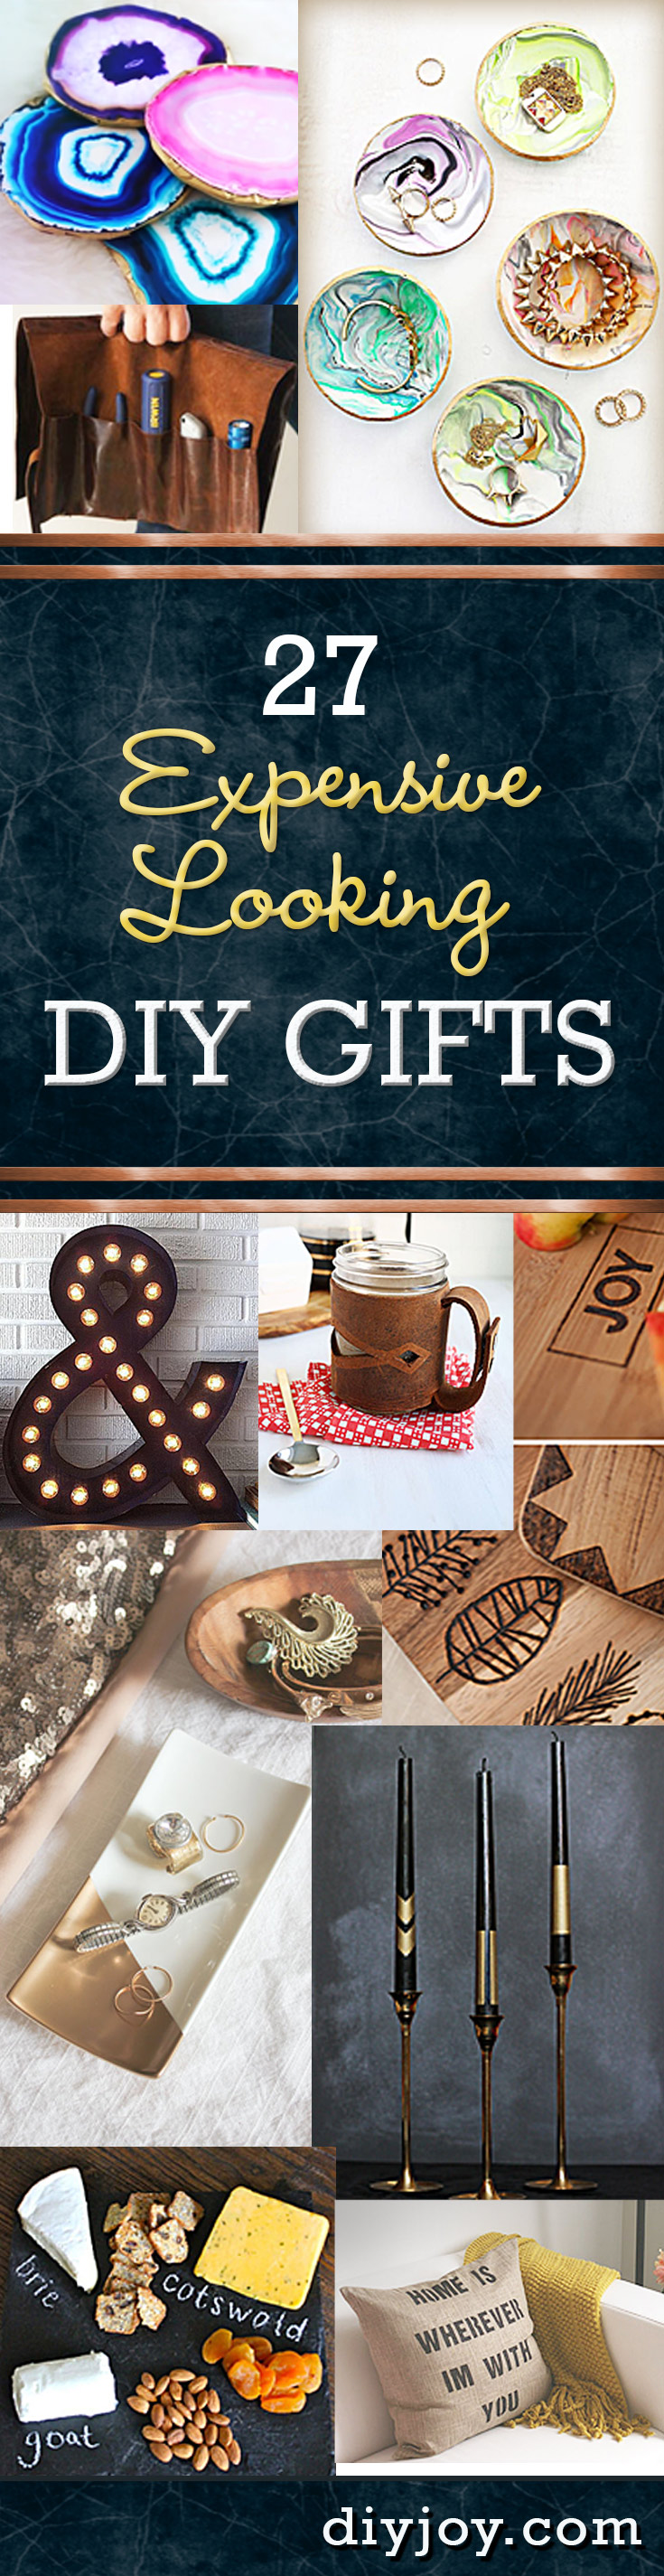 Easy Craft Ideas For Christmas Gifts Part - 28: Inexpensive DIY Gifts And Creative Crafts And Projects That Make Cool DIY  Gift Ideas CHEAP!